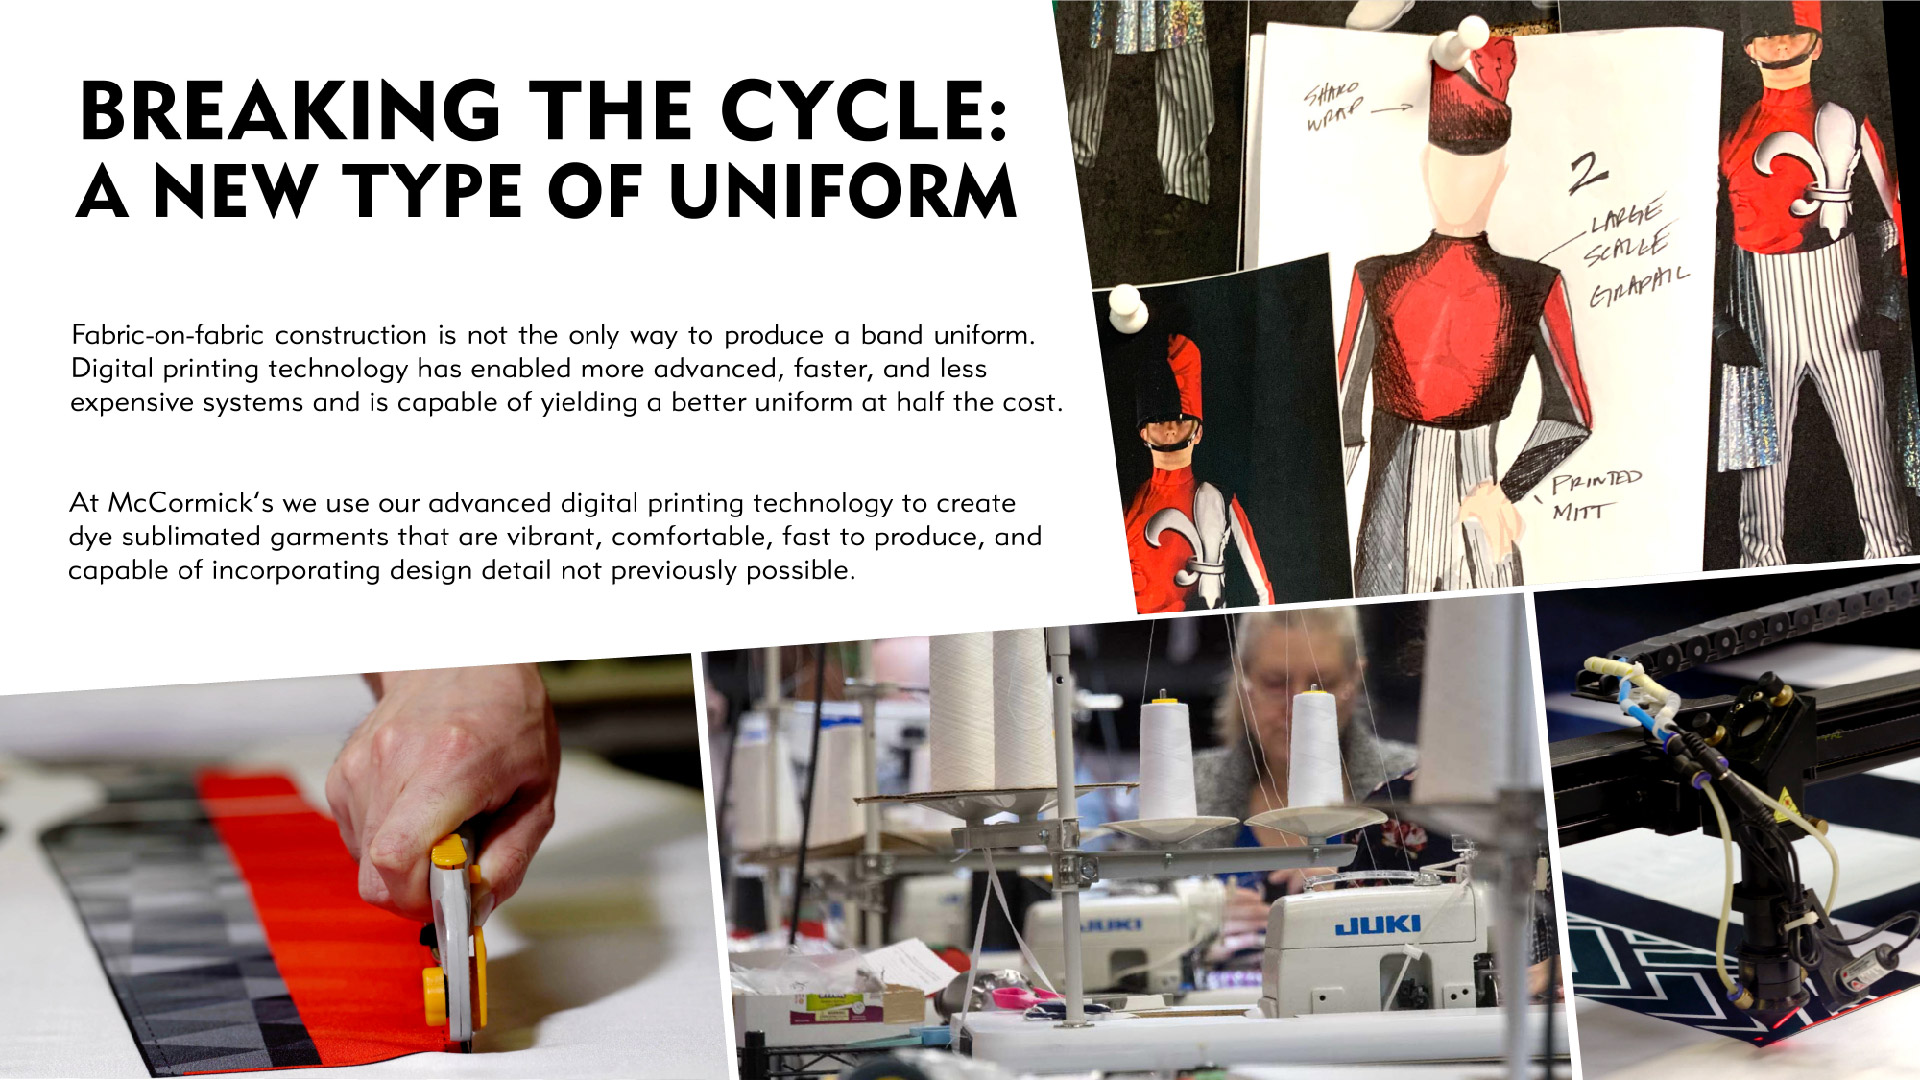 Breaking the Cycle: A New Type of Uniform Fabric-on-fabric construction is not the only way to produce a band uniform. Digital printing technology has enabled more advanced, faster, and less expensive systems and is capable of yielding a better uniform at half the cost. At McCormick's we use our advanced digital printing technology to create dye sublimated garments that are vibrant, comfortable, fast to produce, and capable of incorporating design detail not previously possible.